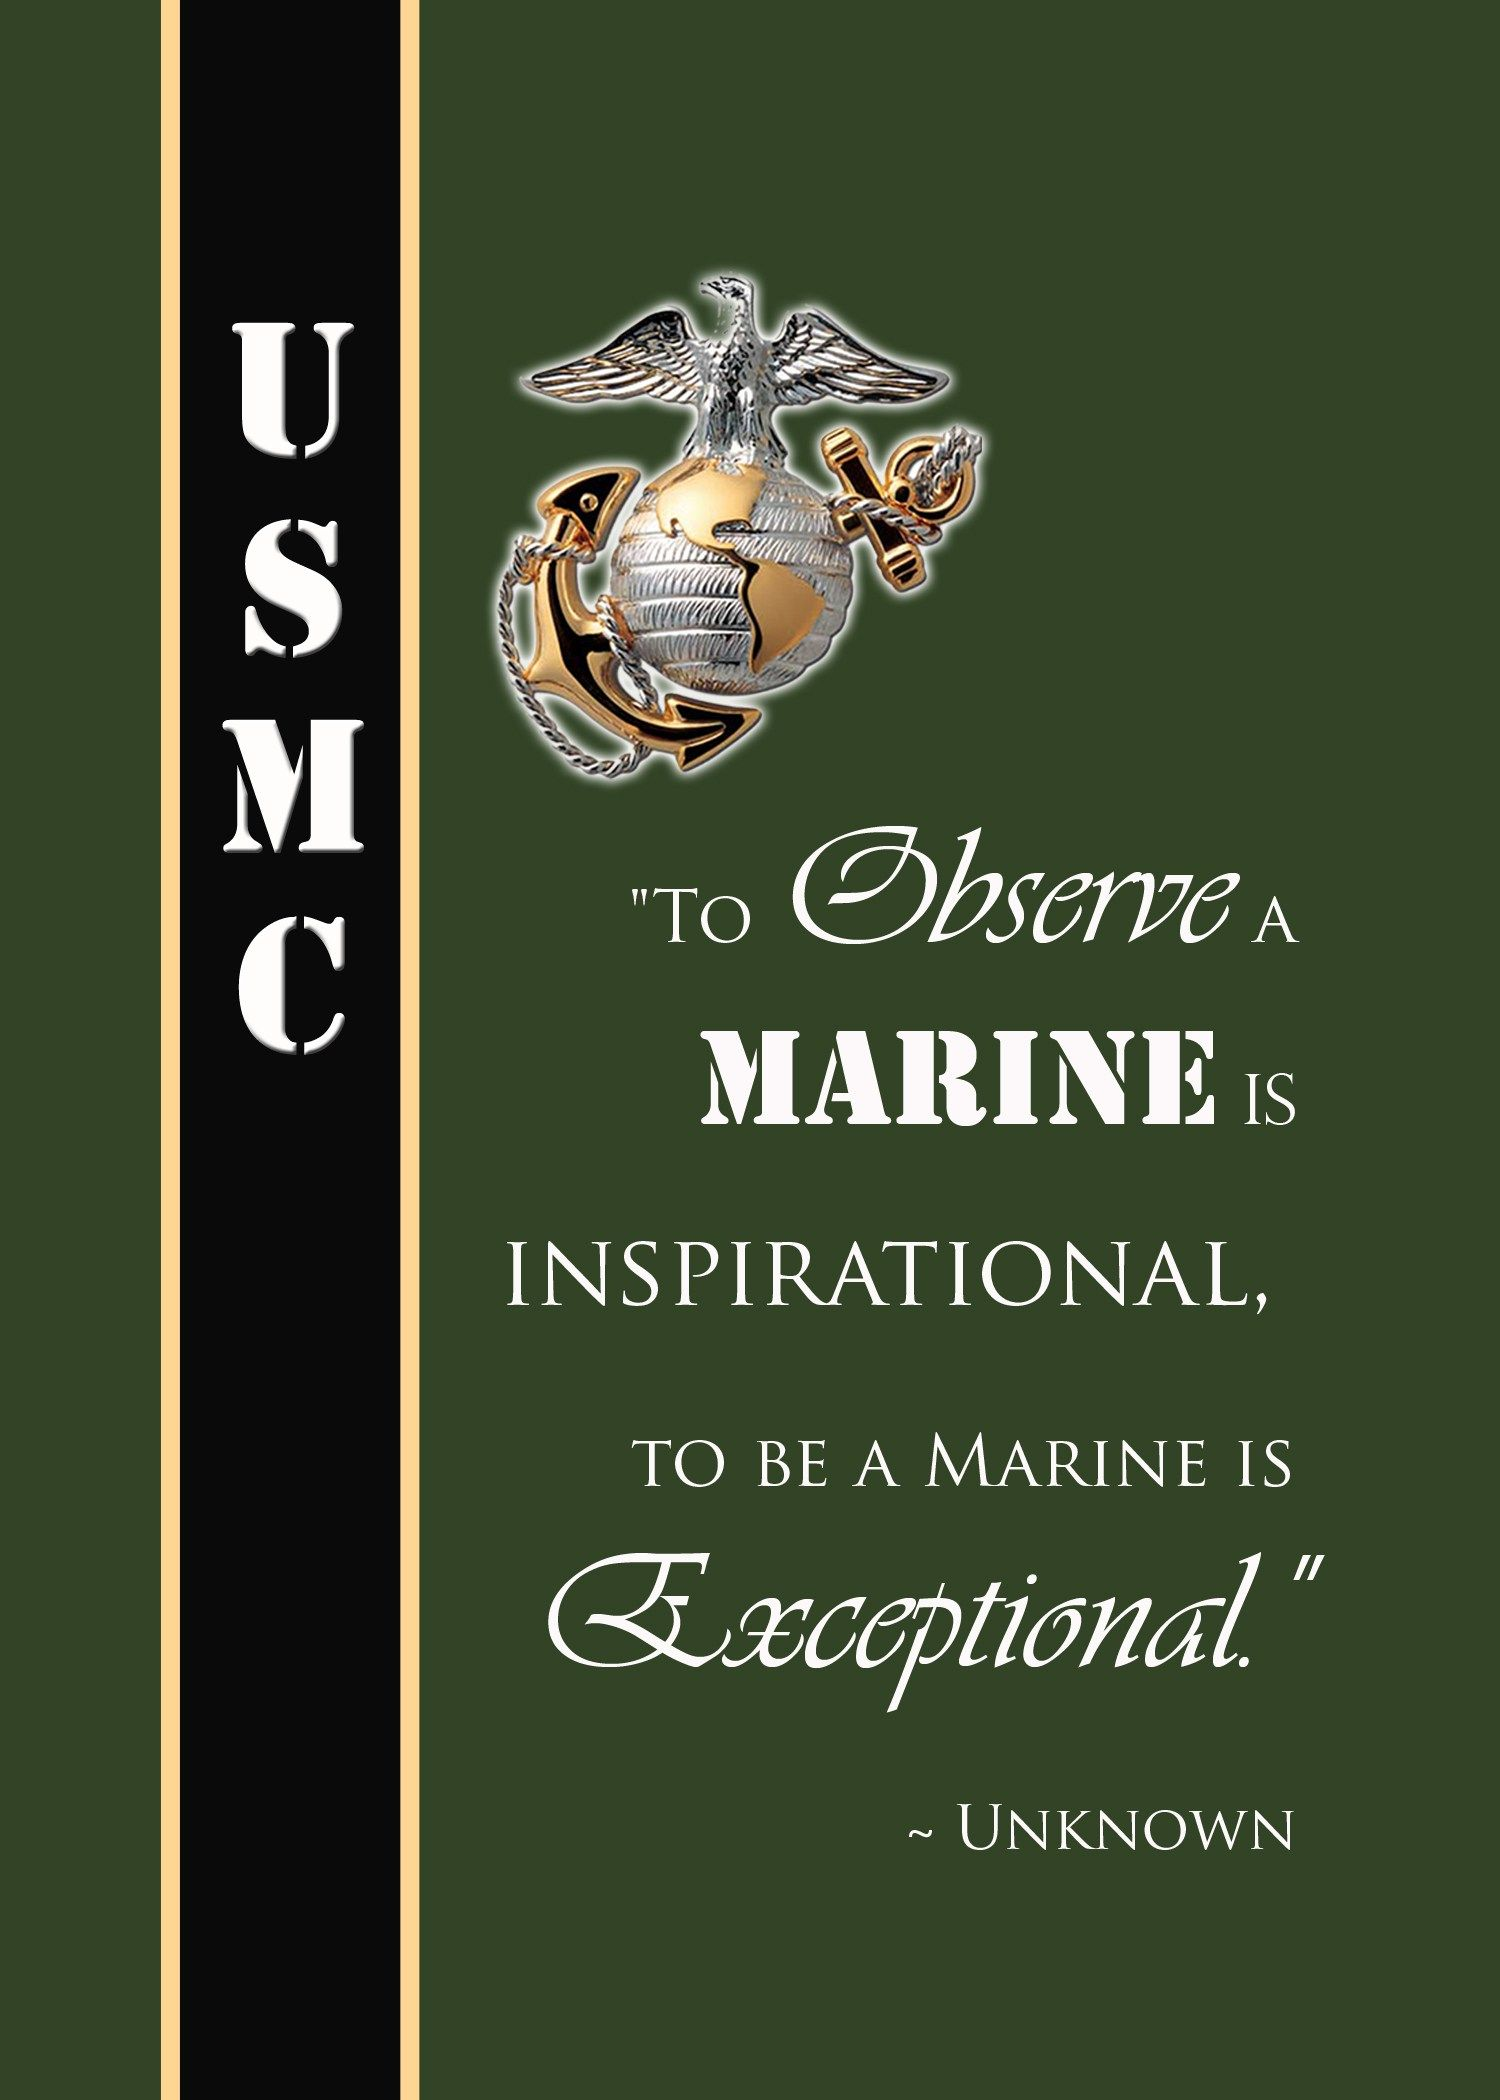 Marine Corps Quotes Happy Birthday Marine Corps From The Mother Of Three Marinesto